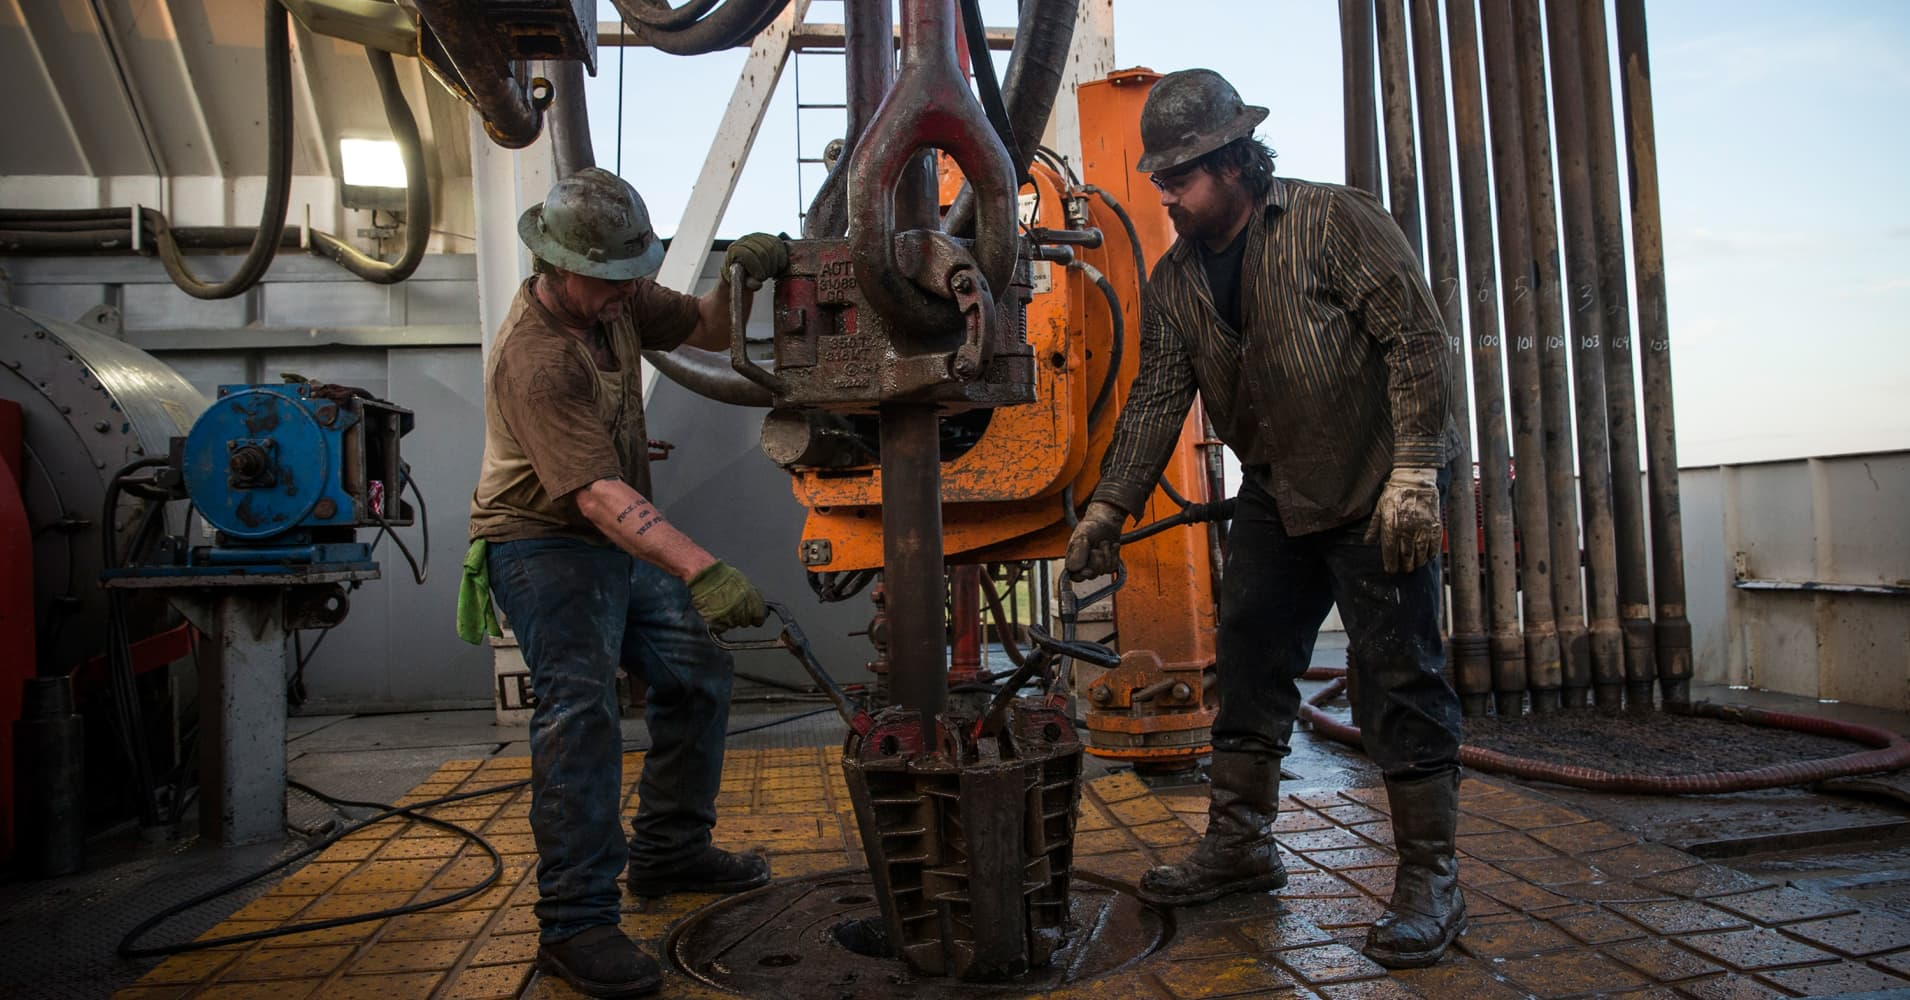 'Extraordinary' growth in US shale oil could soon force OPEC to take action, IEA says